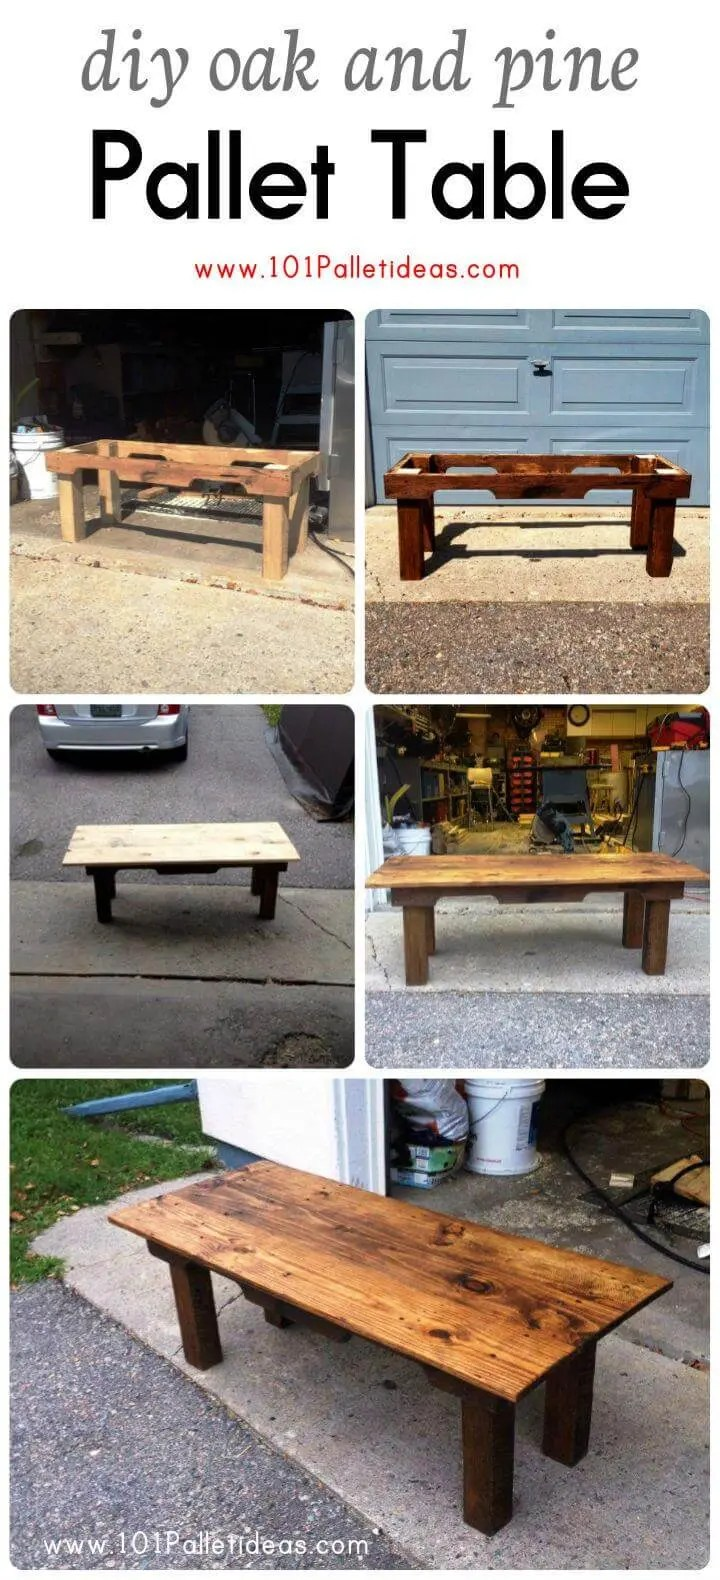 Diy Table With Pallets Diy Oak And Pine Pallet Table Easy Pallet Ideas